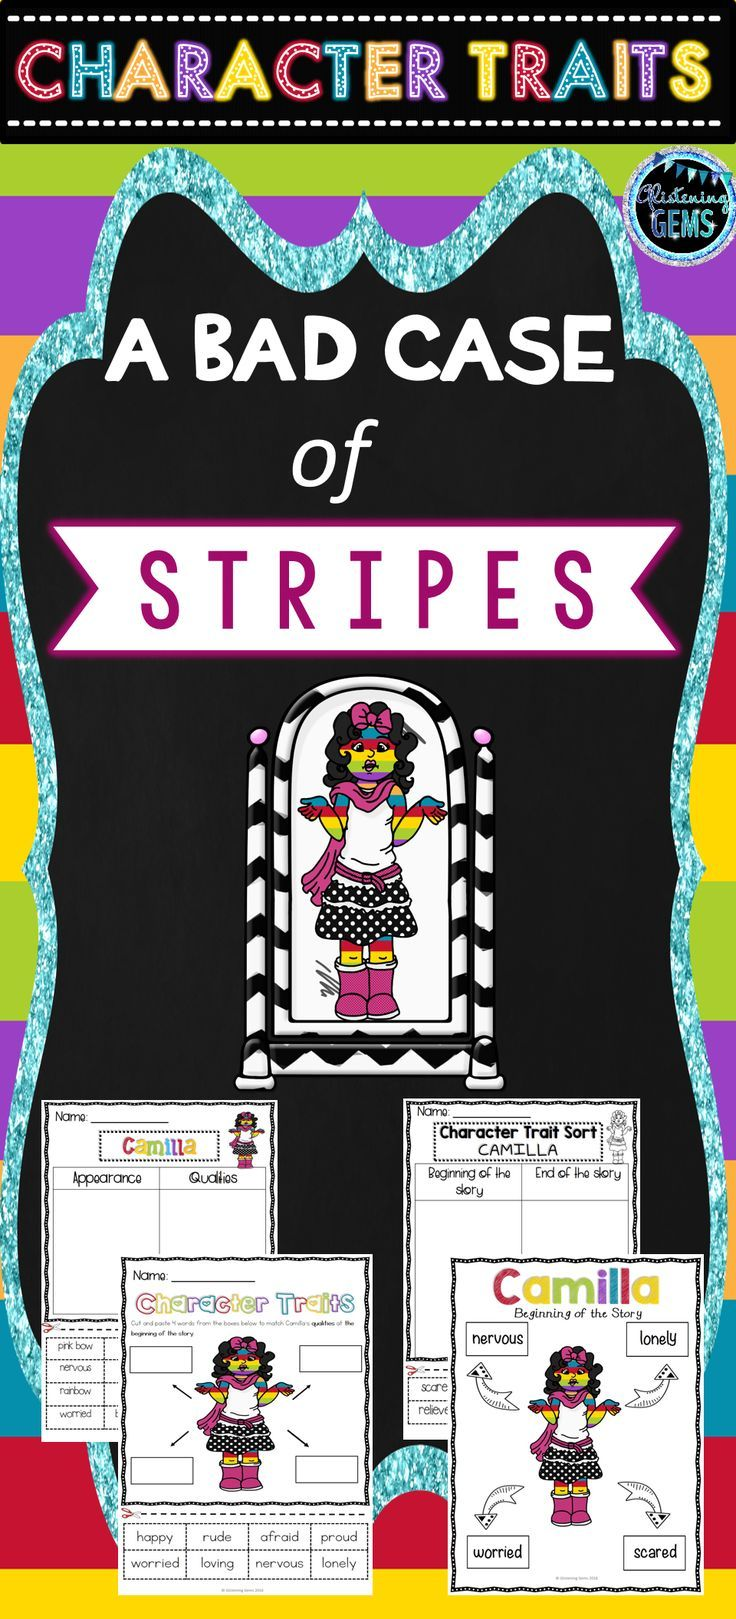 Bad case of stripes character traits activities no prep